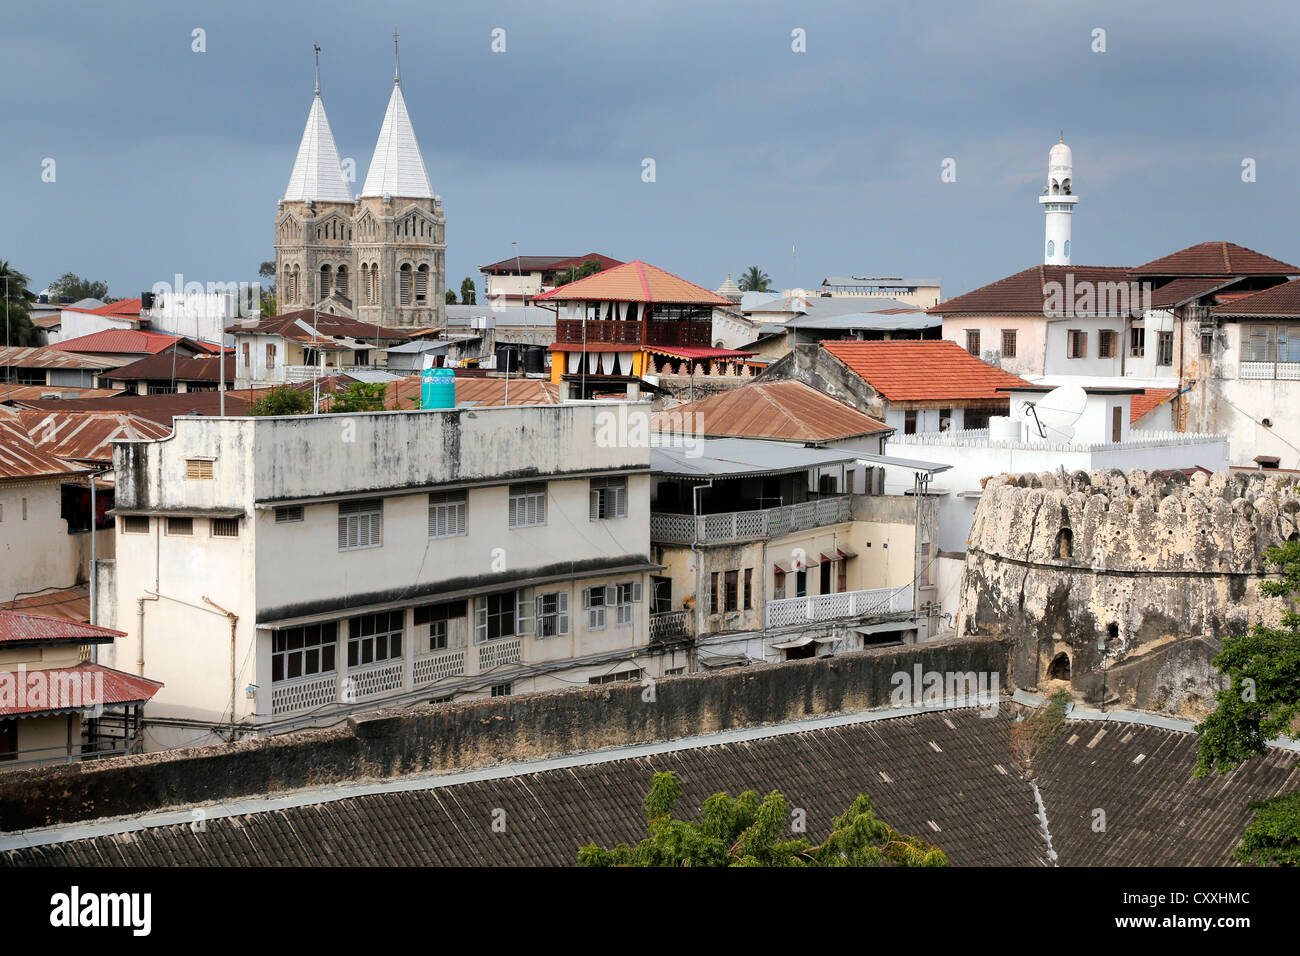 Stonetown of Zanzibar with St Josephs Cathedral and Mosque, Tanzania - Stock Image